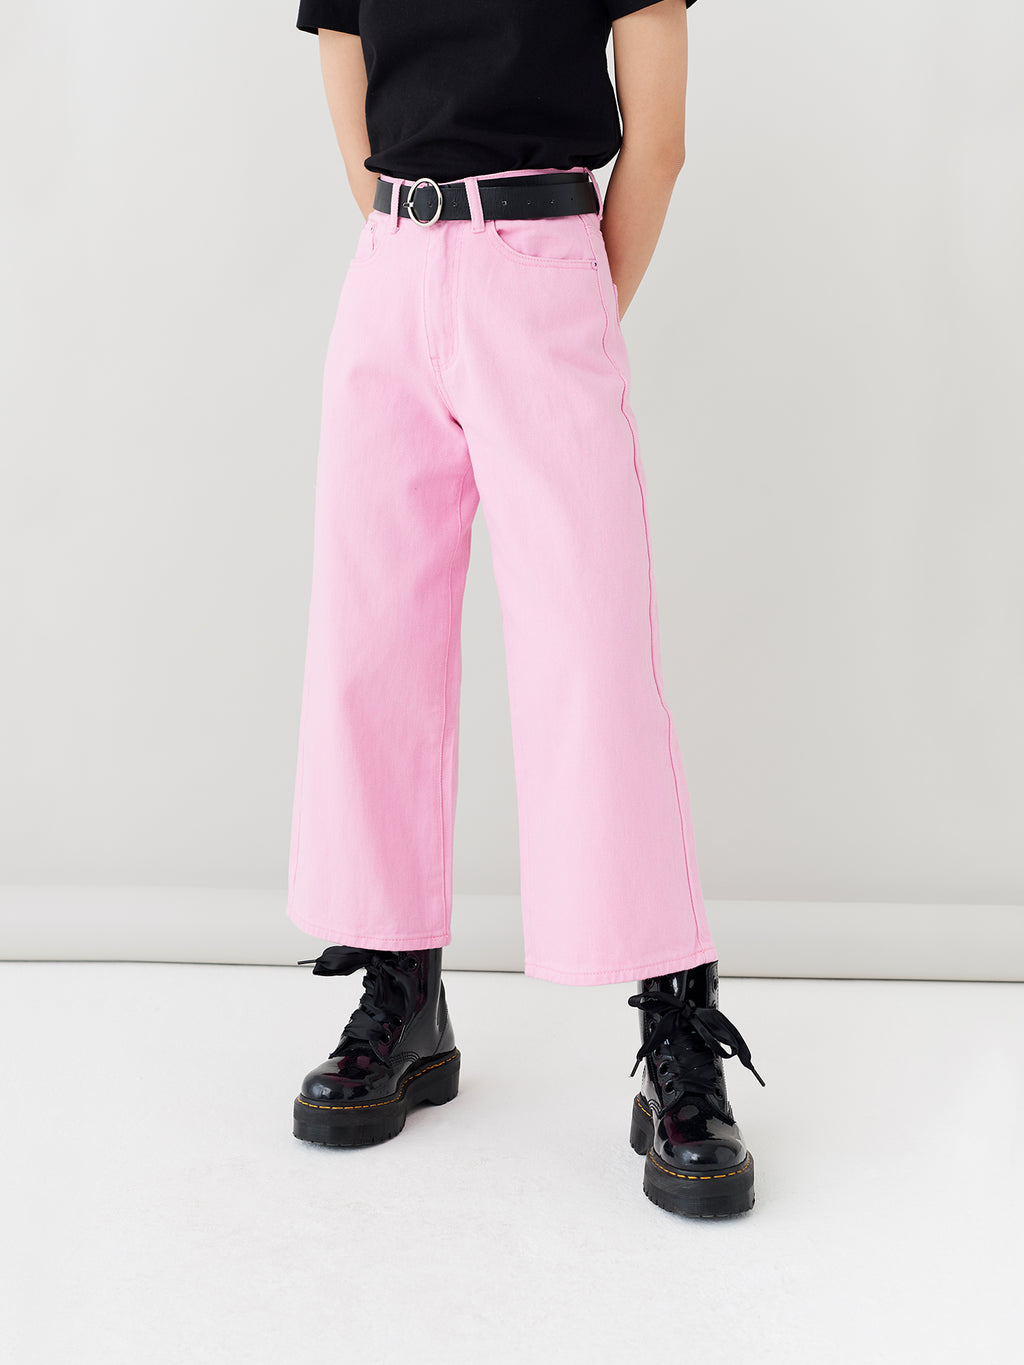 LO Pink Cropped Wide Leg Jeans